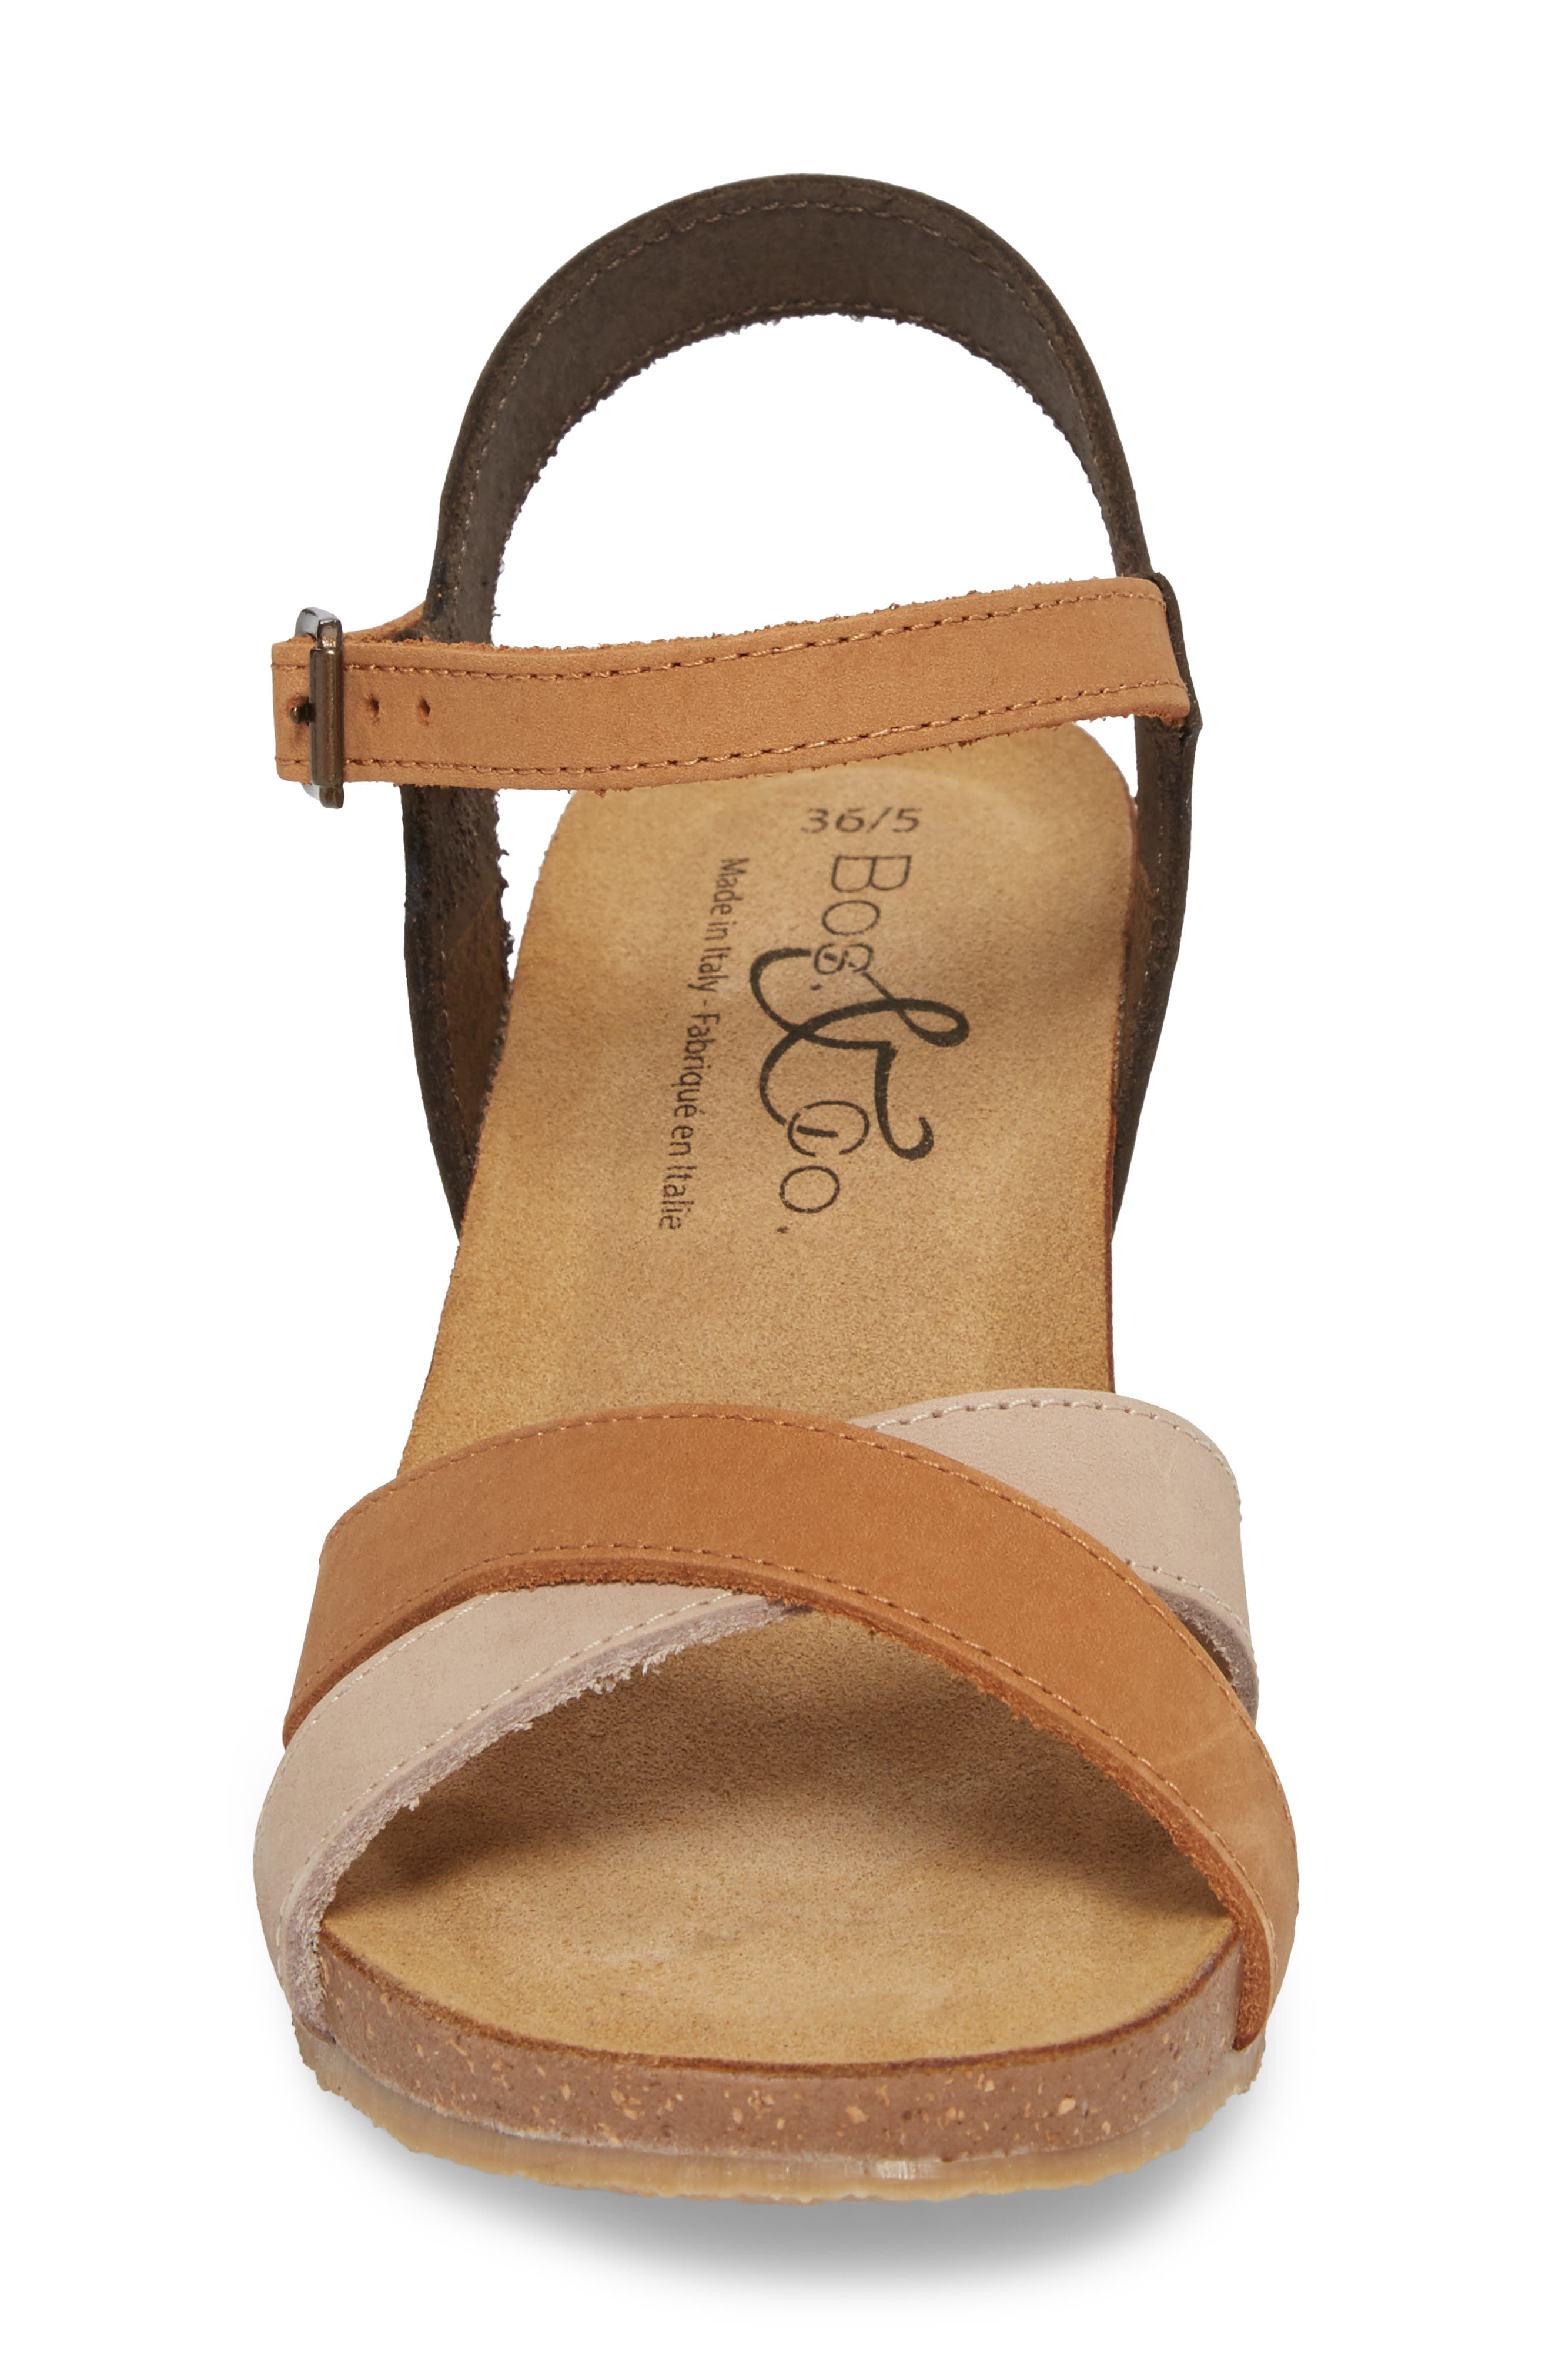 Lucca Wedge Sandal,                             Alternate thumbnail 4, color,                             Multi Cognac Nubuck Leather